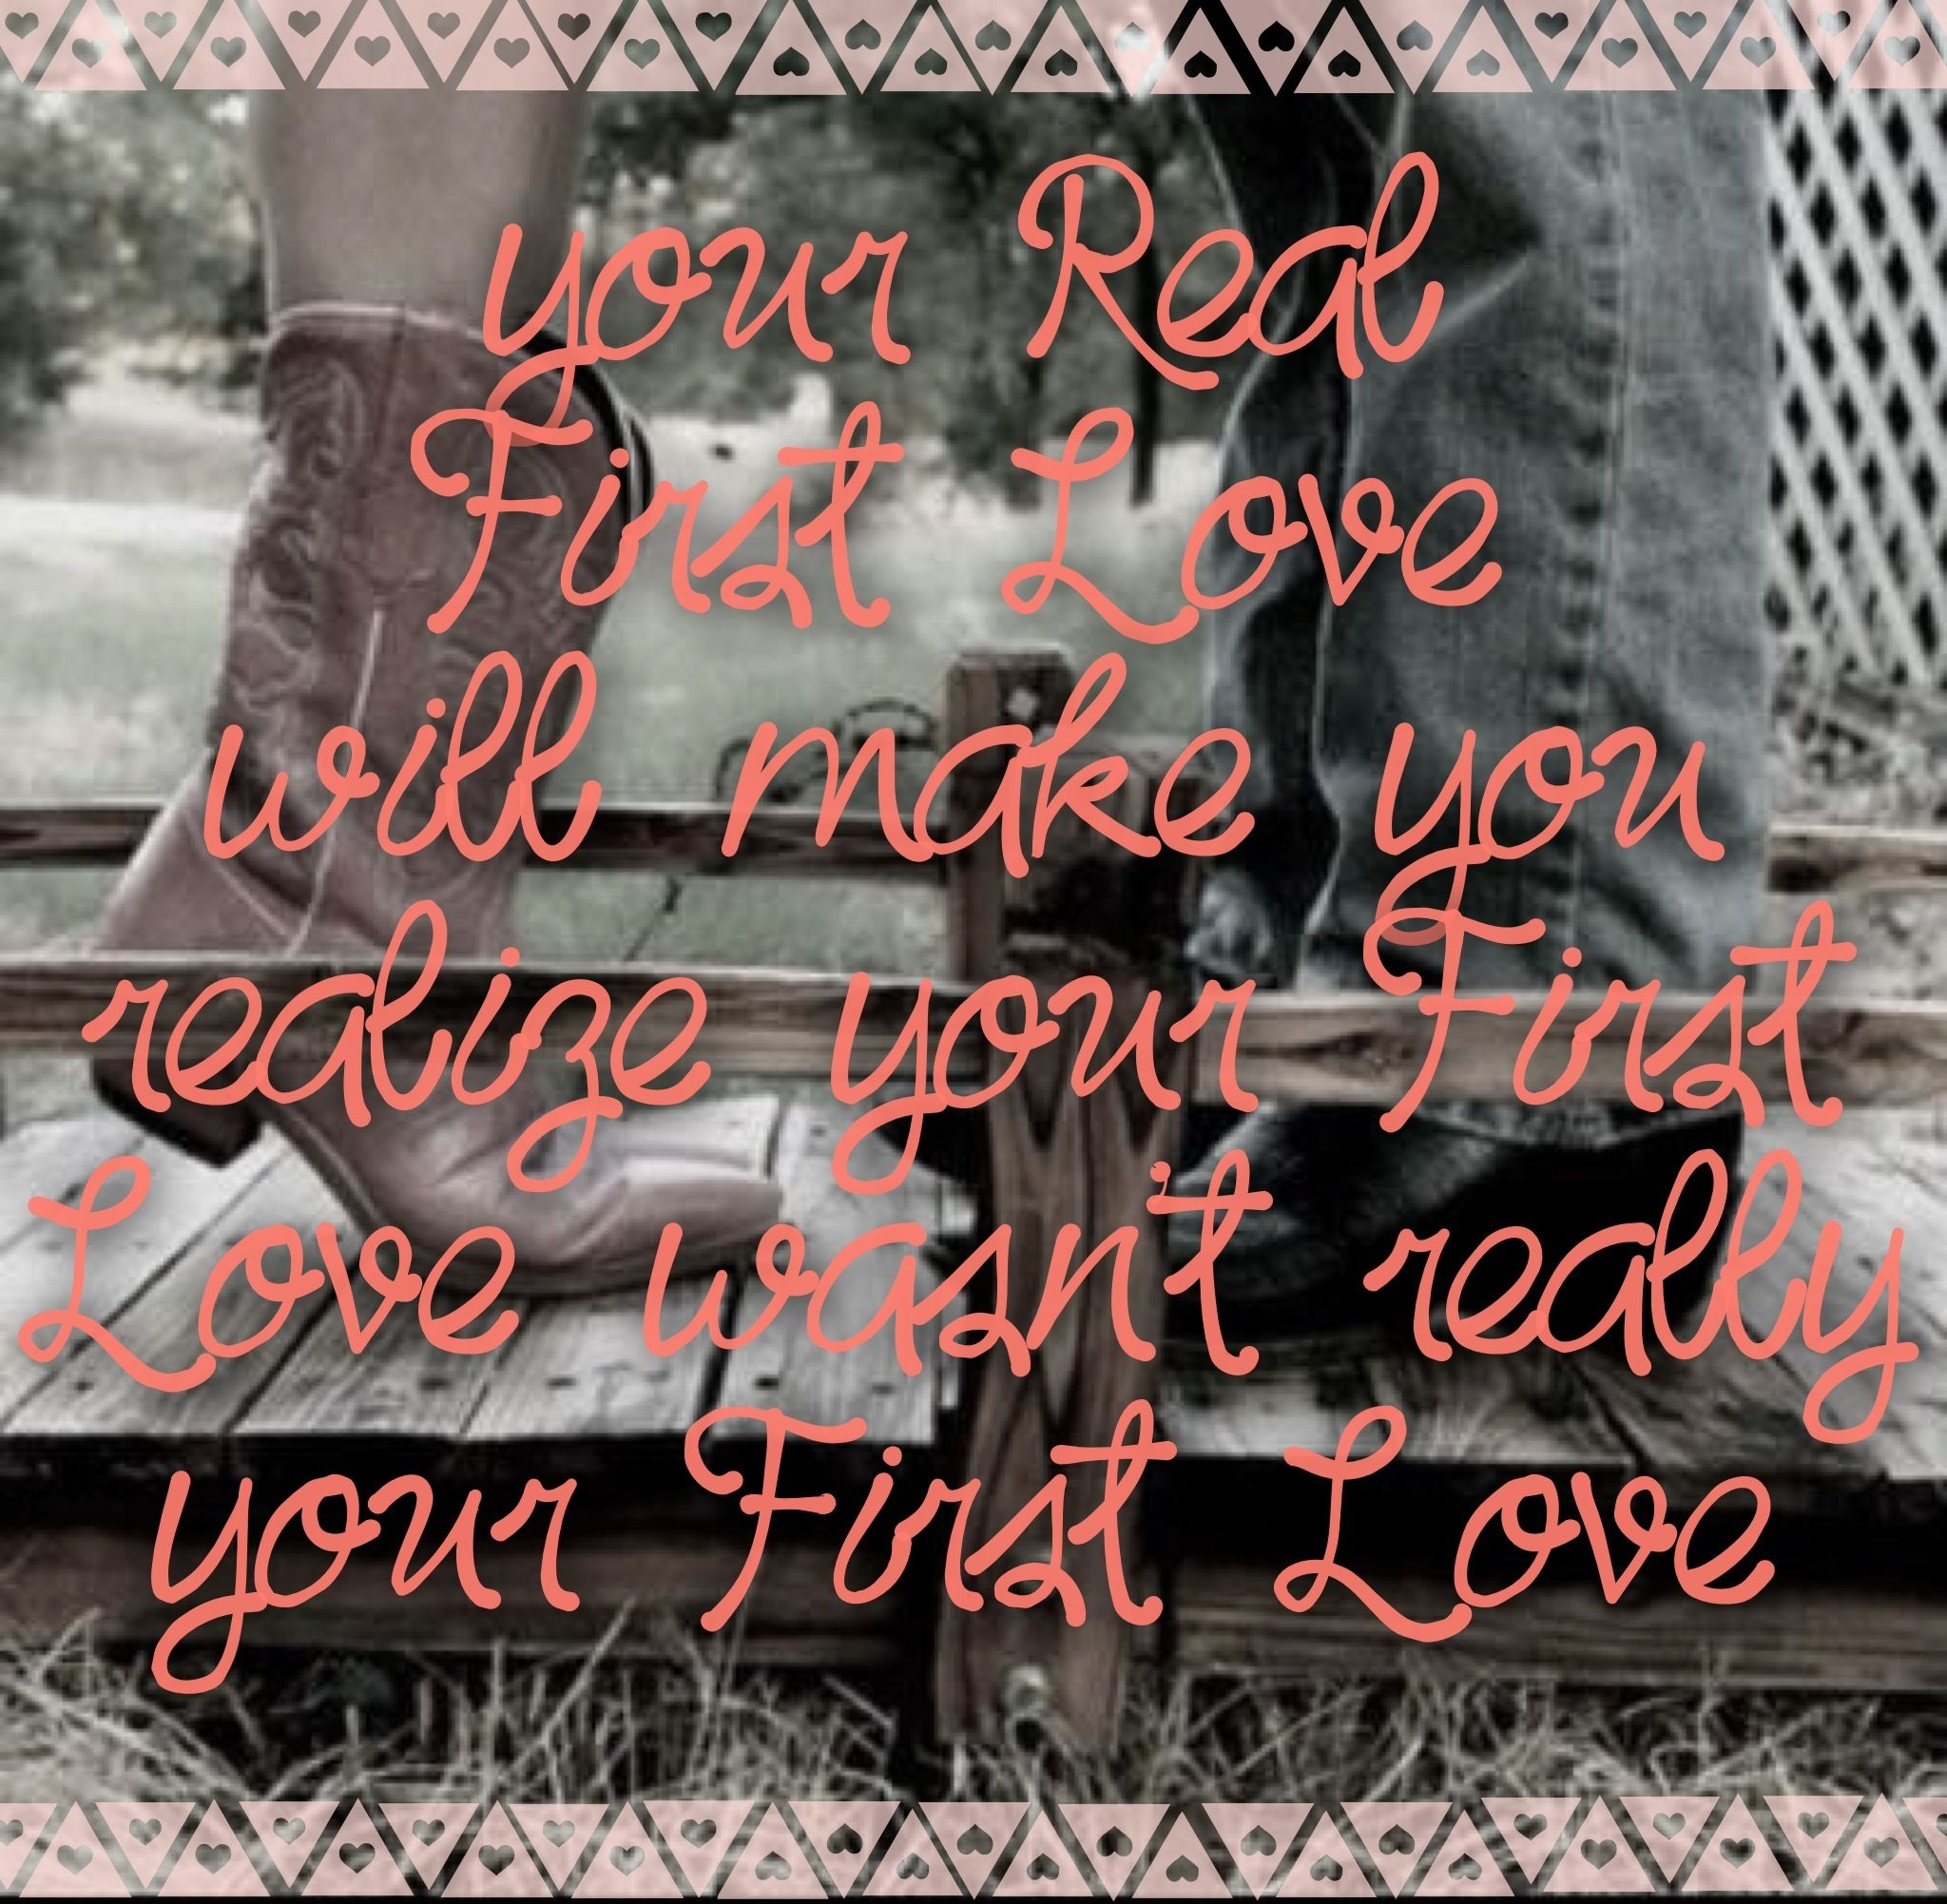 When you know it you know it! #reallove #countrygirl #cowboyboots #lovequote #truth